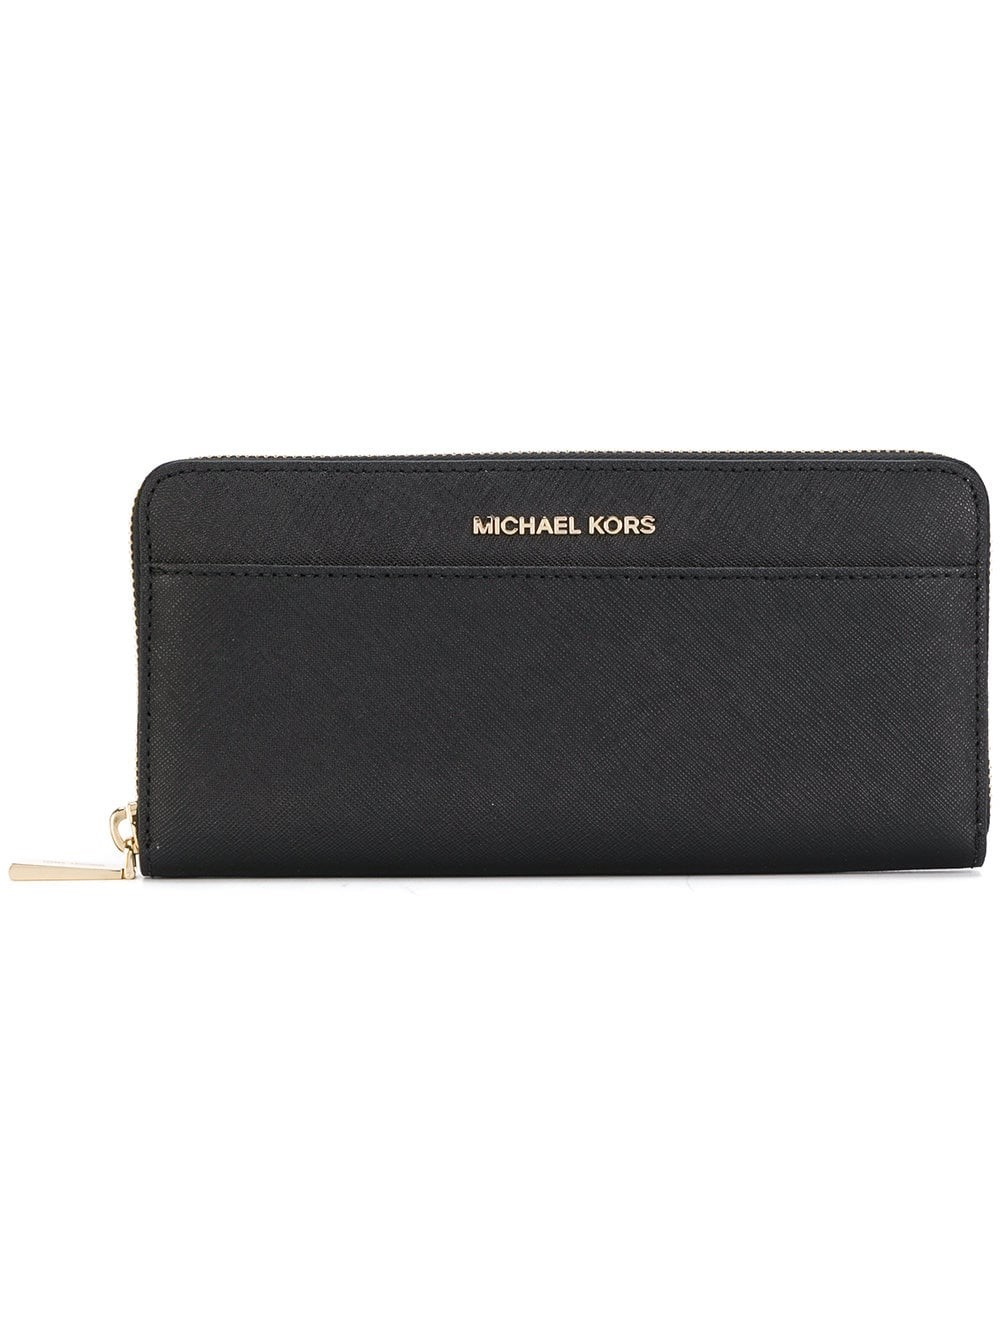 727942dfb5b2 michael kors mk WOMAN WALLET available on montiboutique.com - 23959